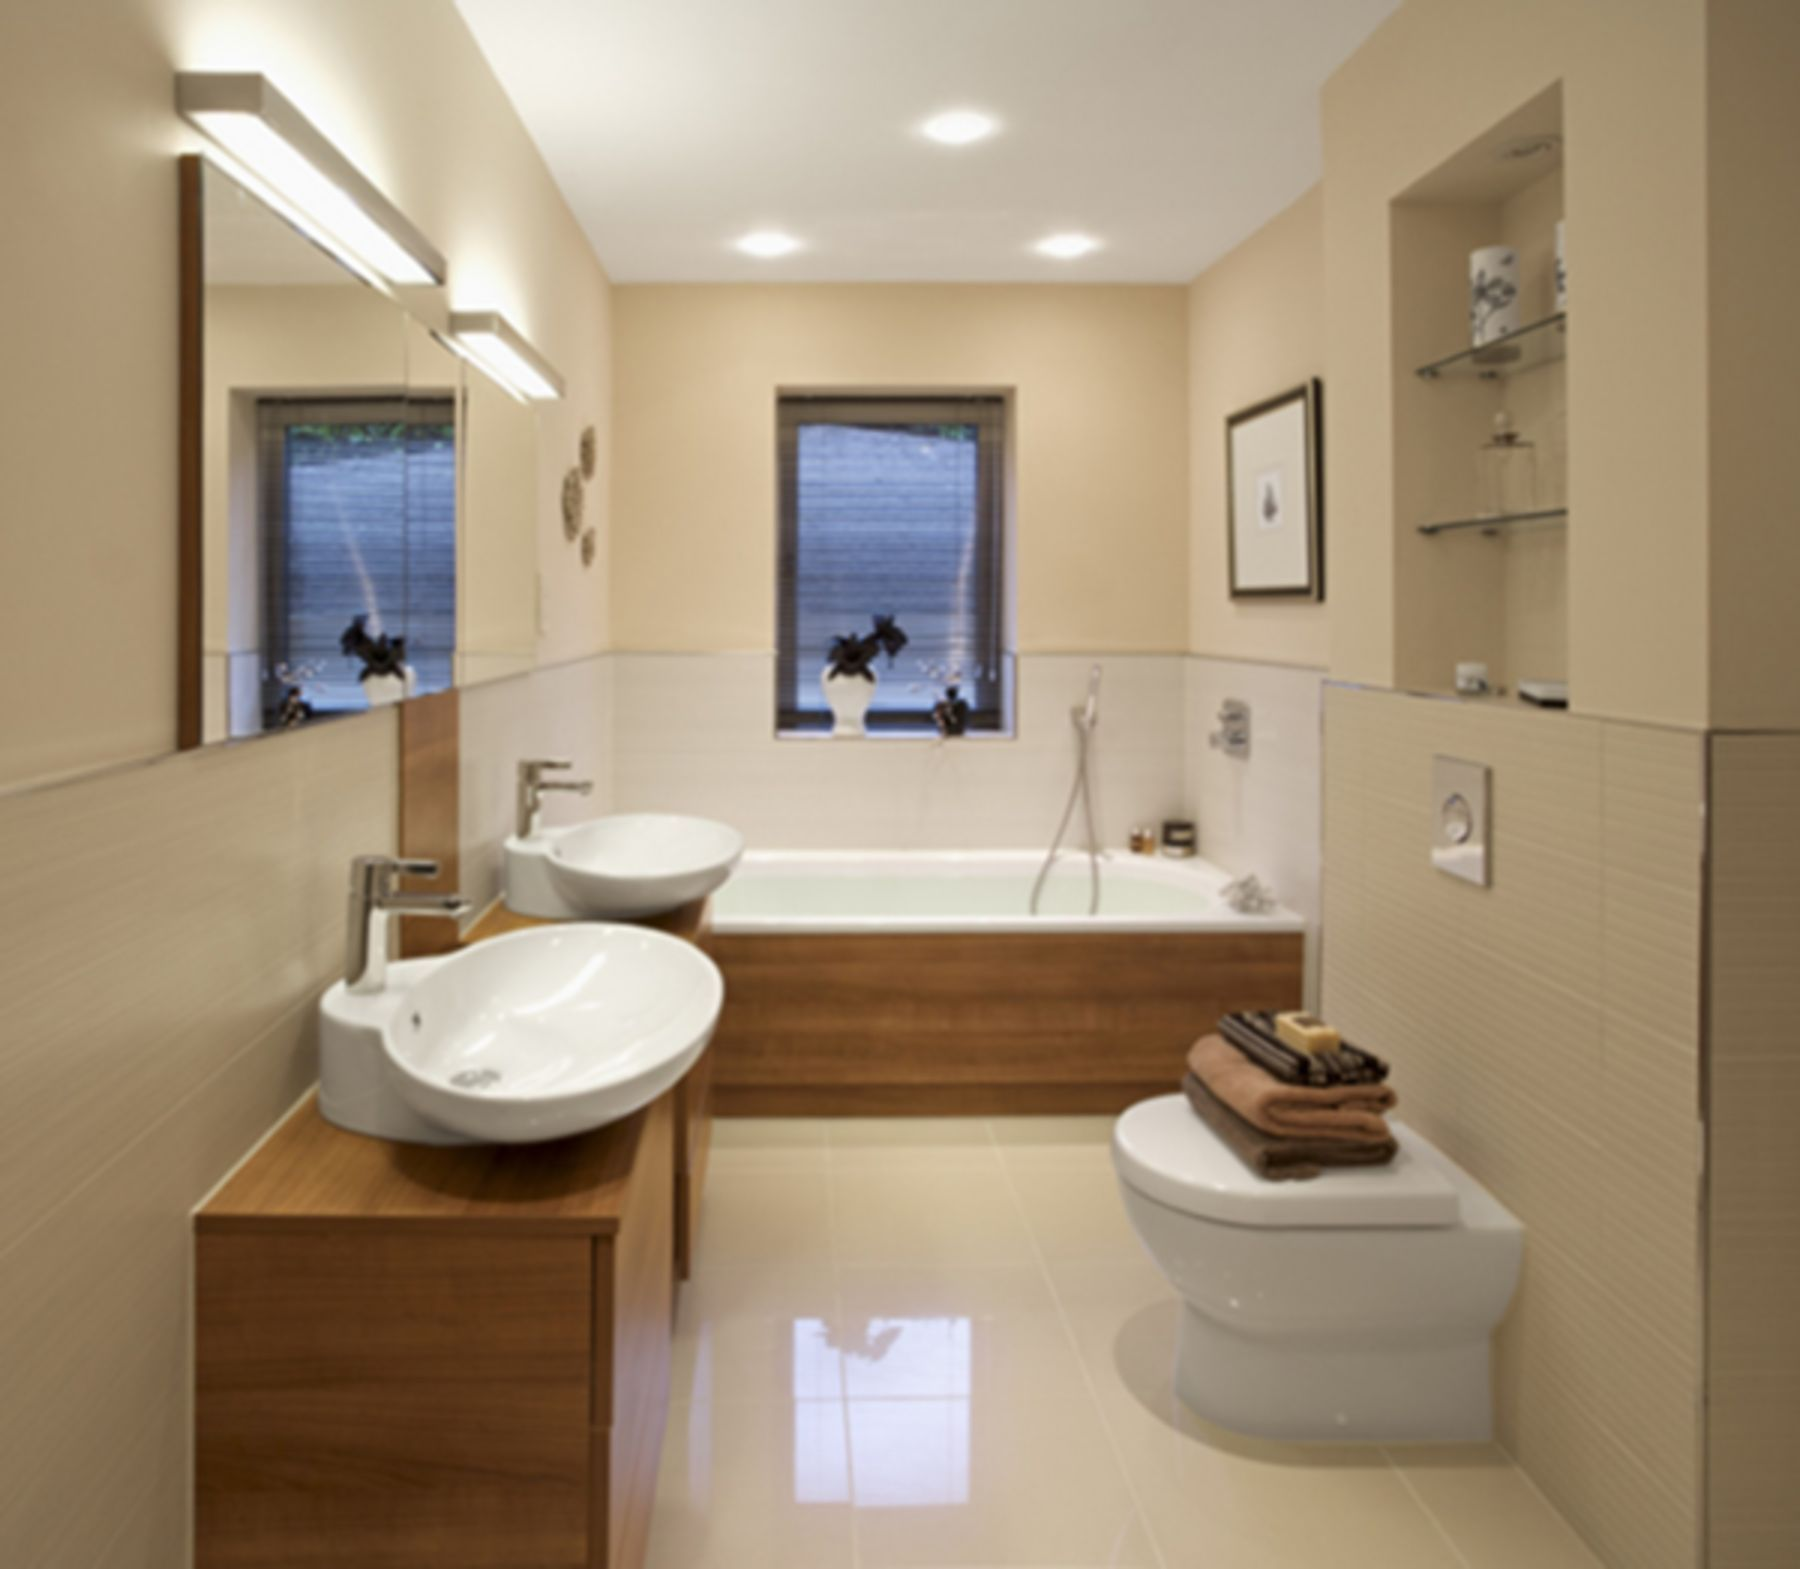 30 Awesome Modern Small Bathroom Designs For Small Home Ideas   Bathroom  design small modern, Cheap bathroom remodel, Contemporary small bathrooms